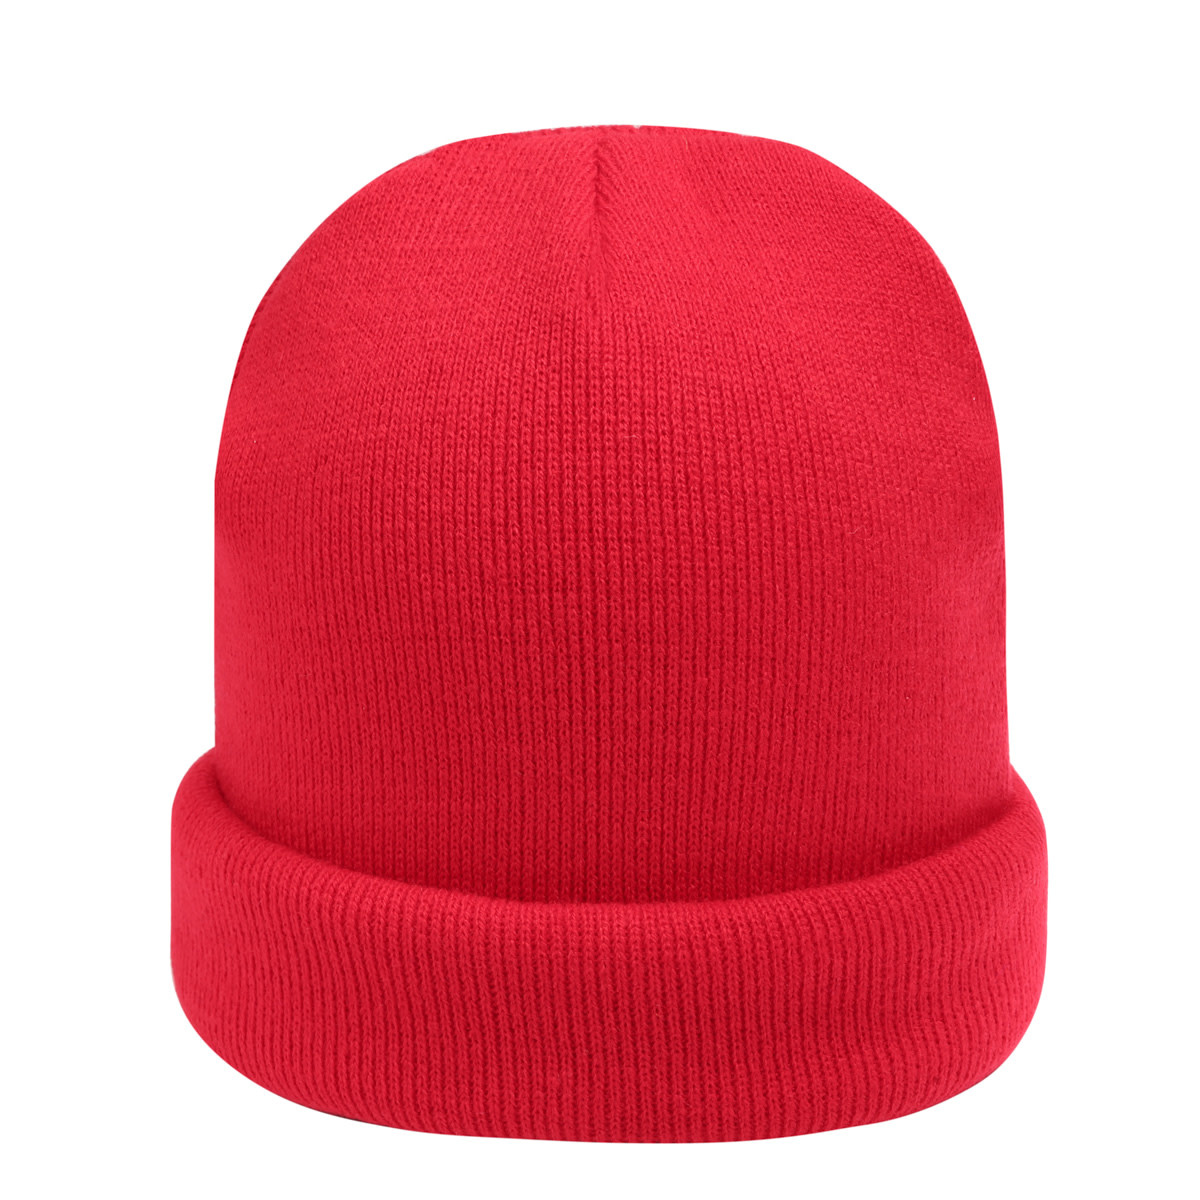 With love Beanie rainbow colors - red